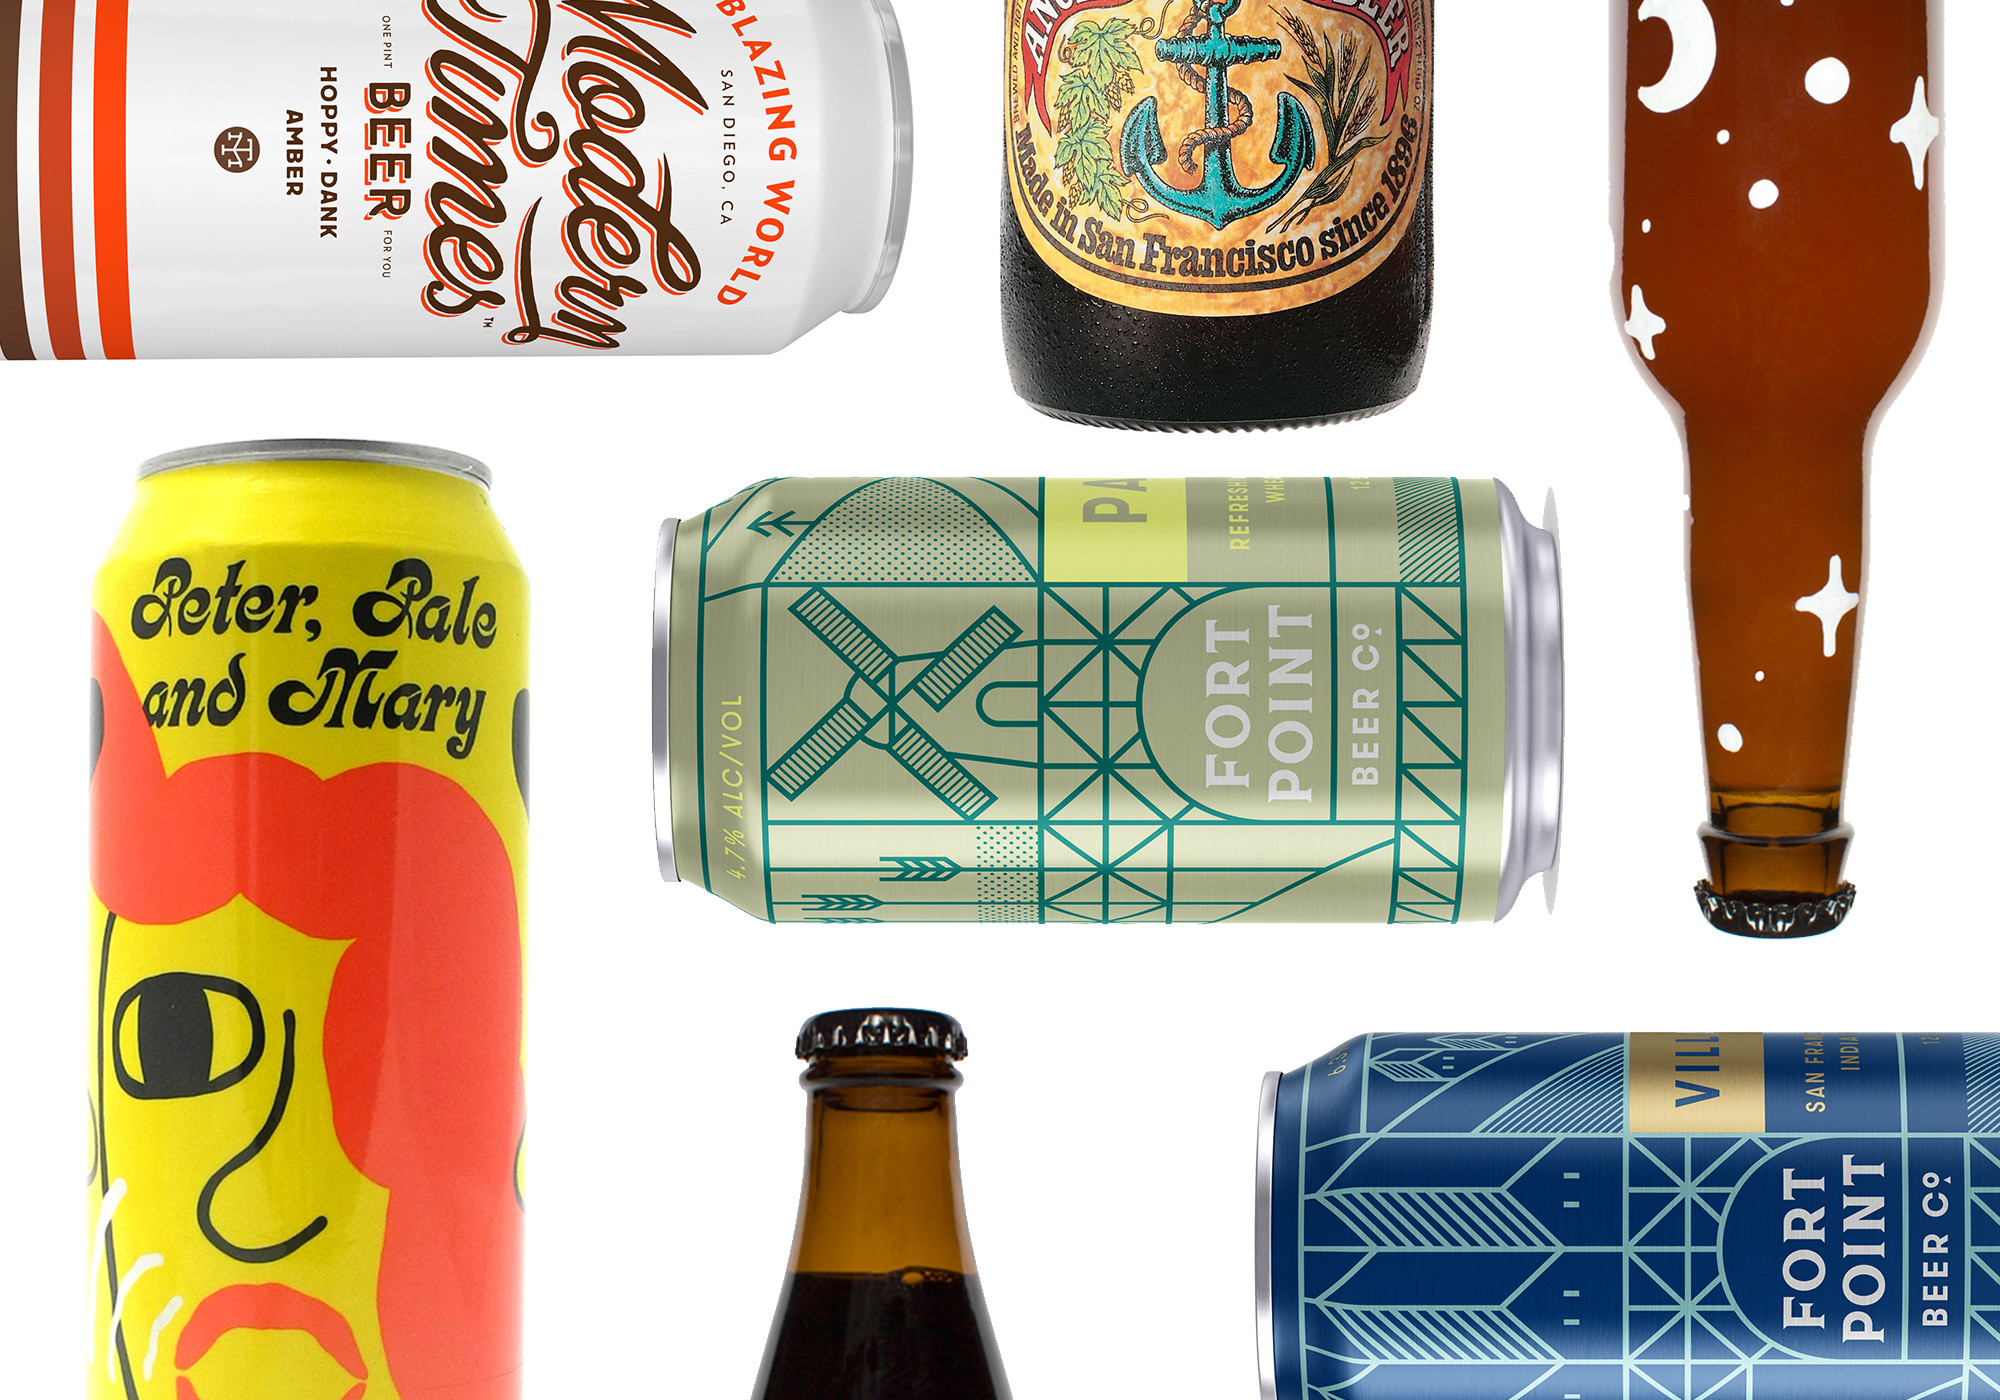 9 of the Most Beautiful Beers You've Ever Seen photo